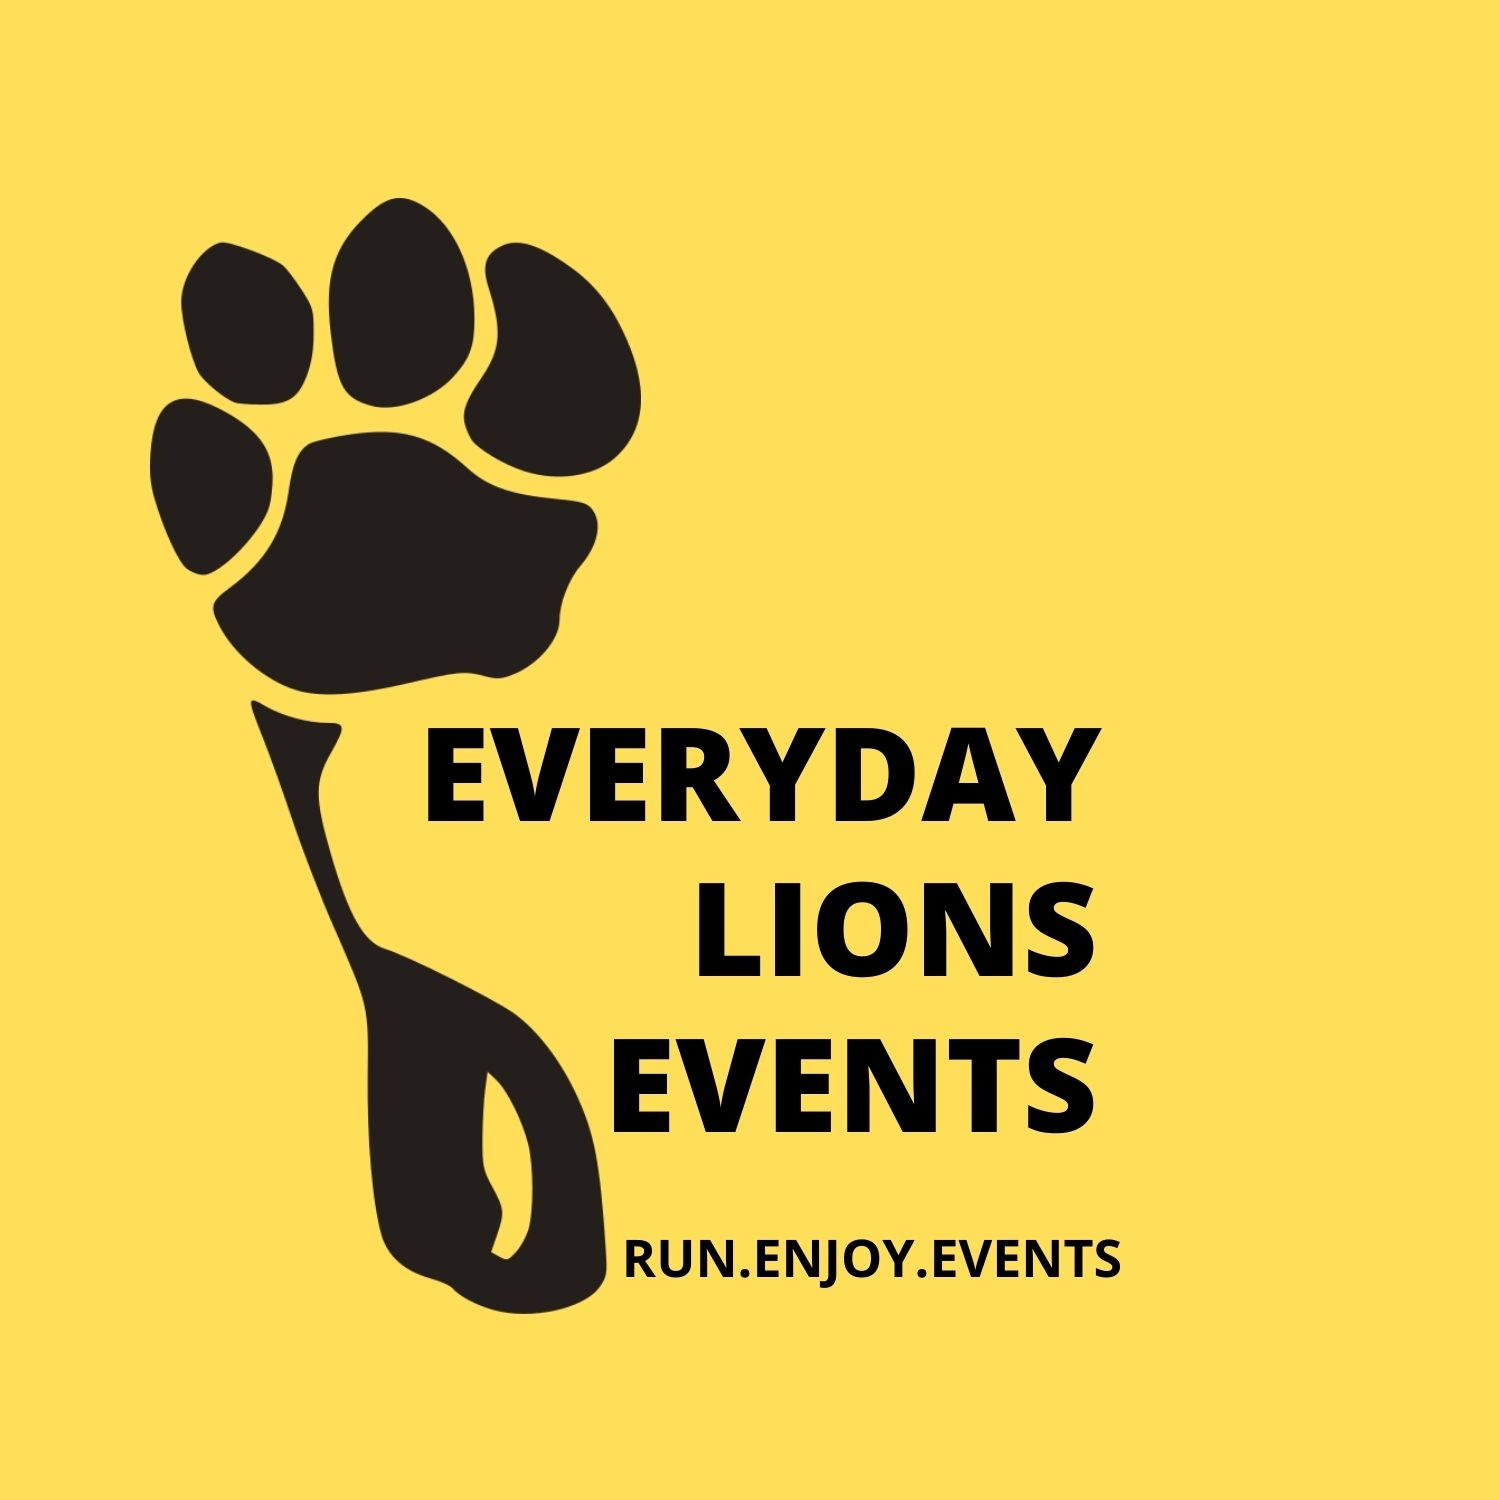 EVERYDAY LIONS EVENTS